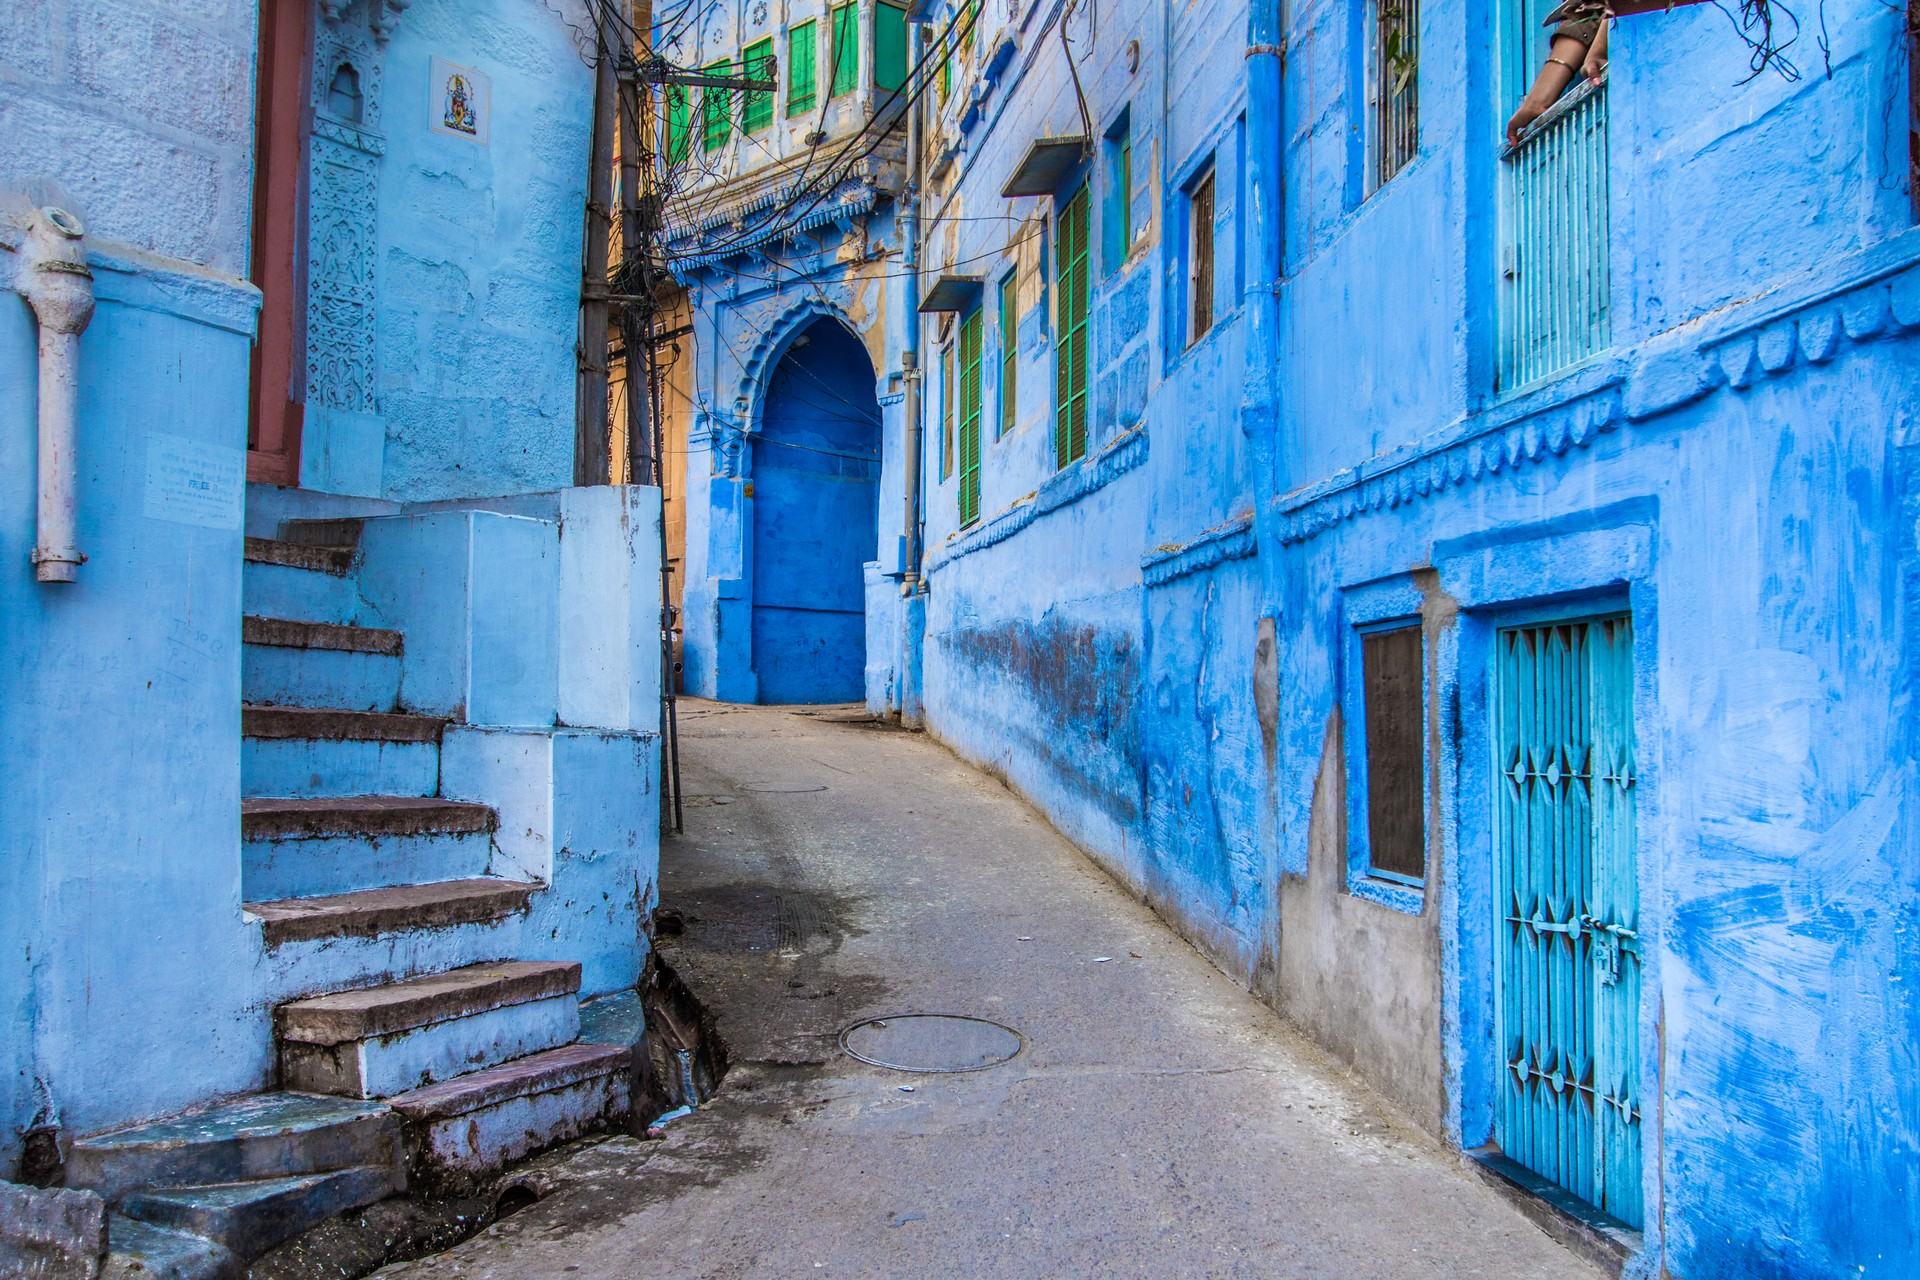 Blue streets of Jodhpur, India